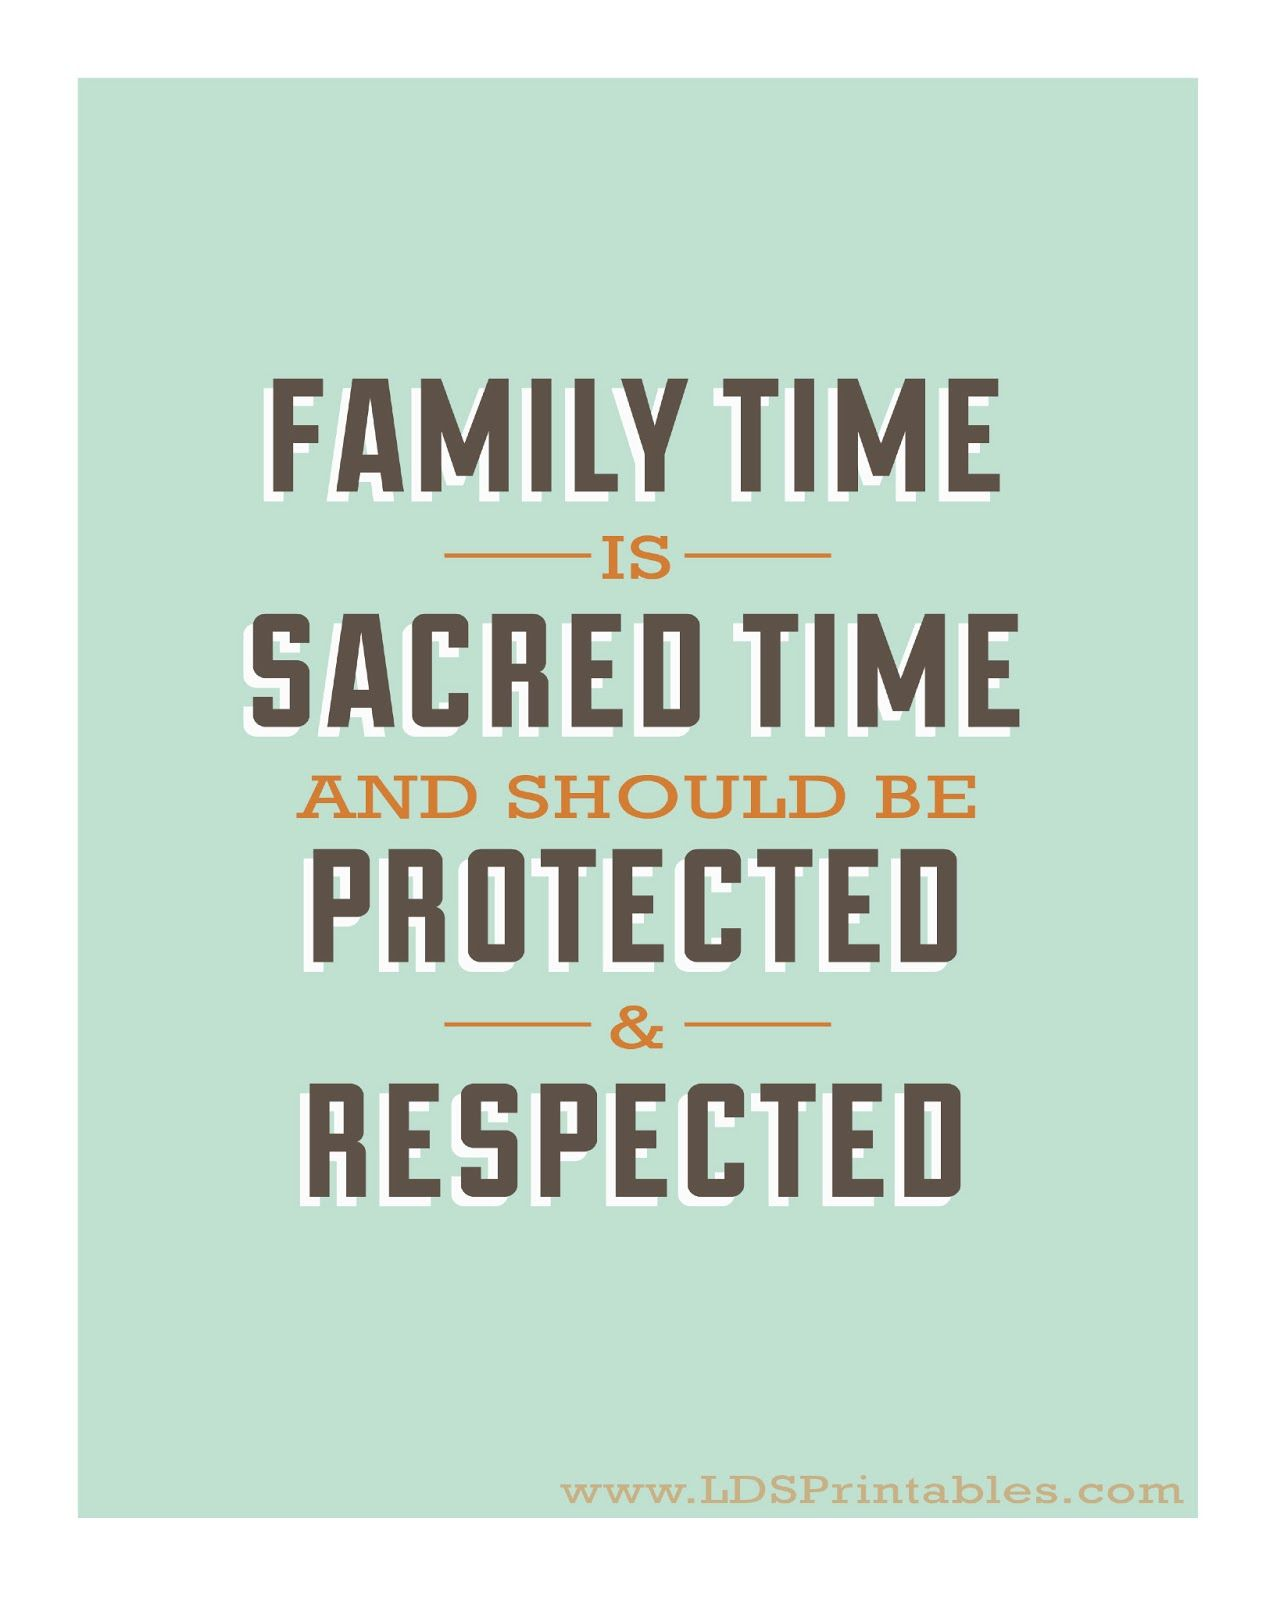 Quality Time With Kids Quotes: Family Time Is Sacred Time. This Is So True. We All Need